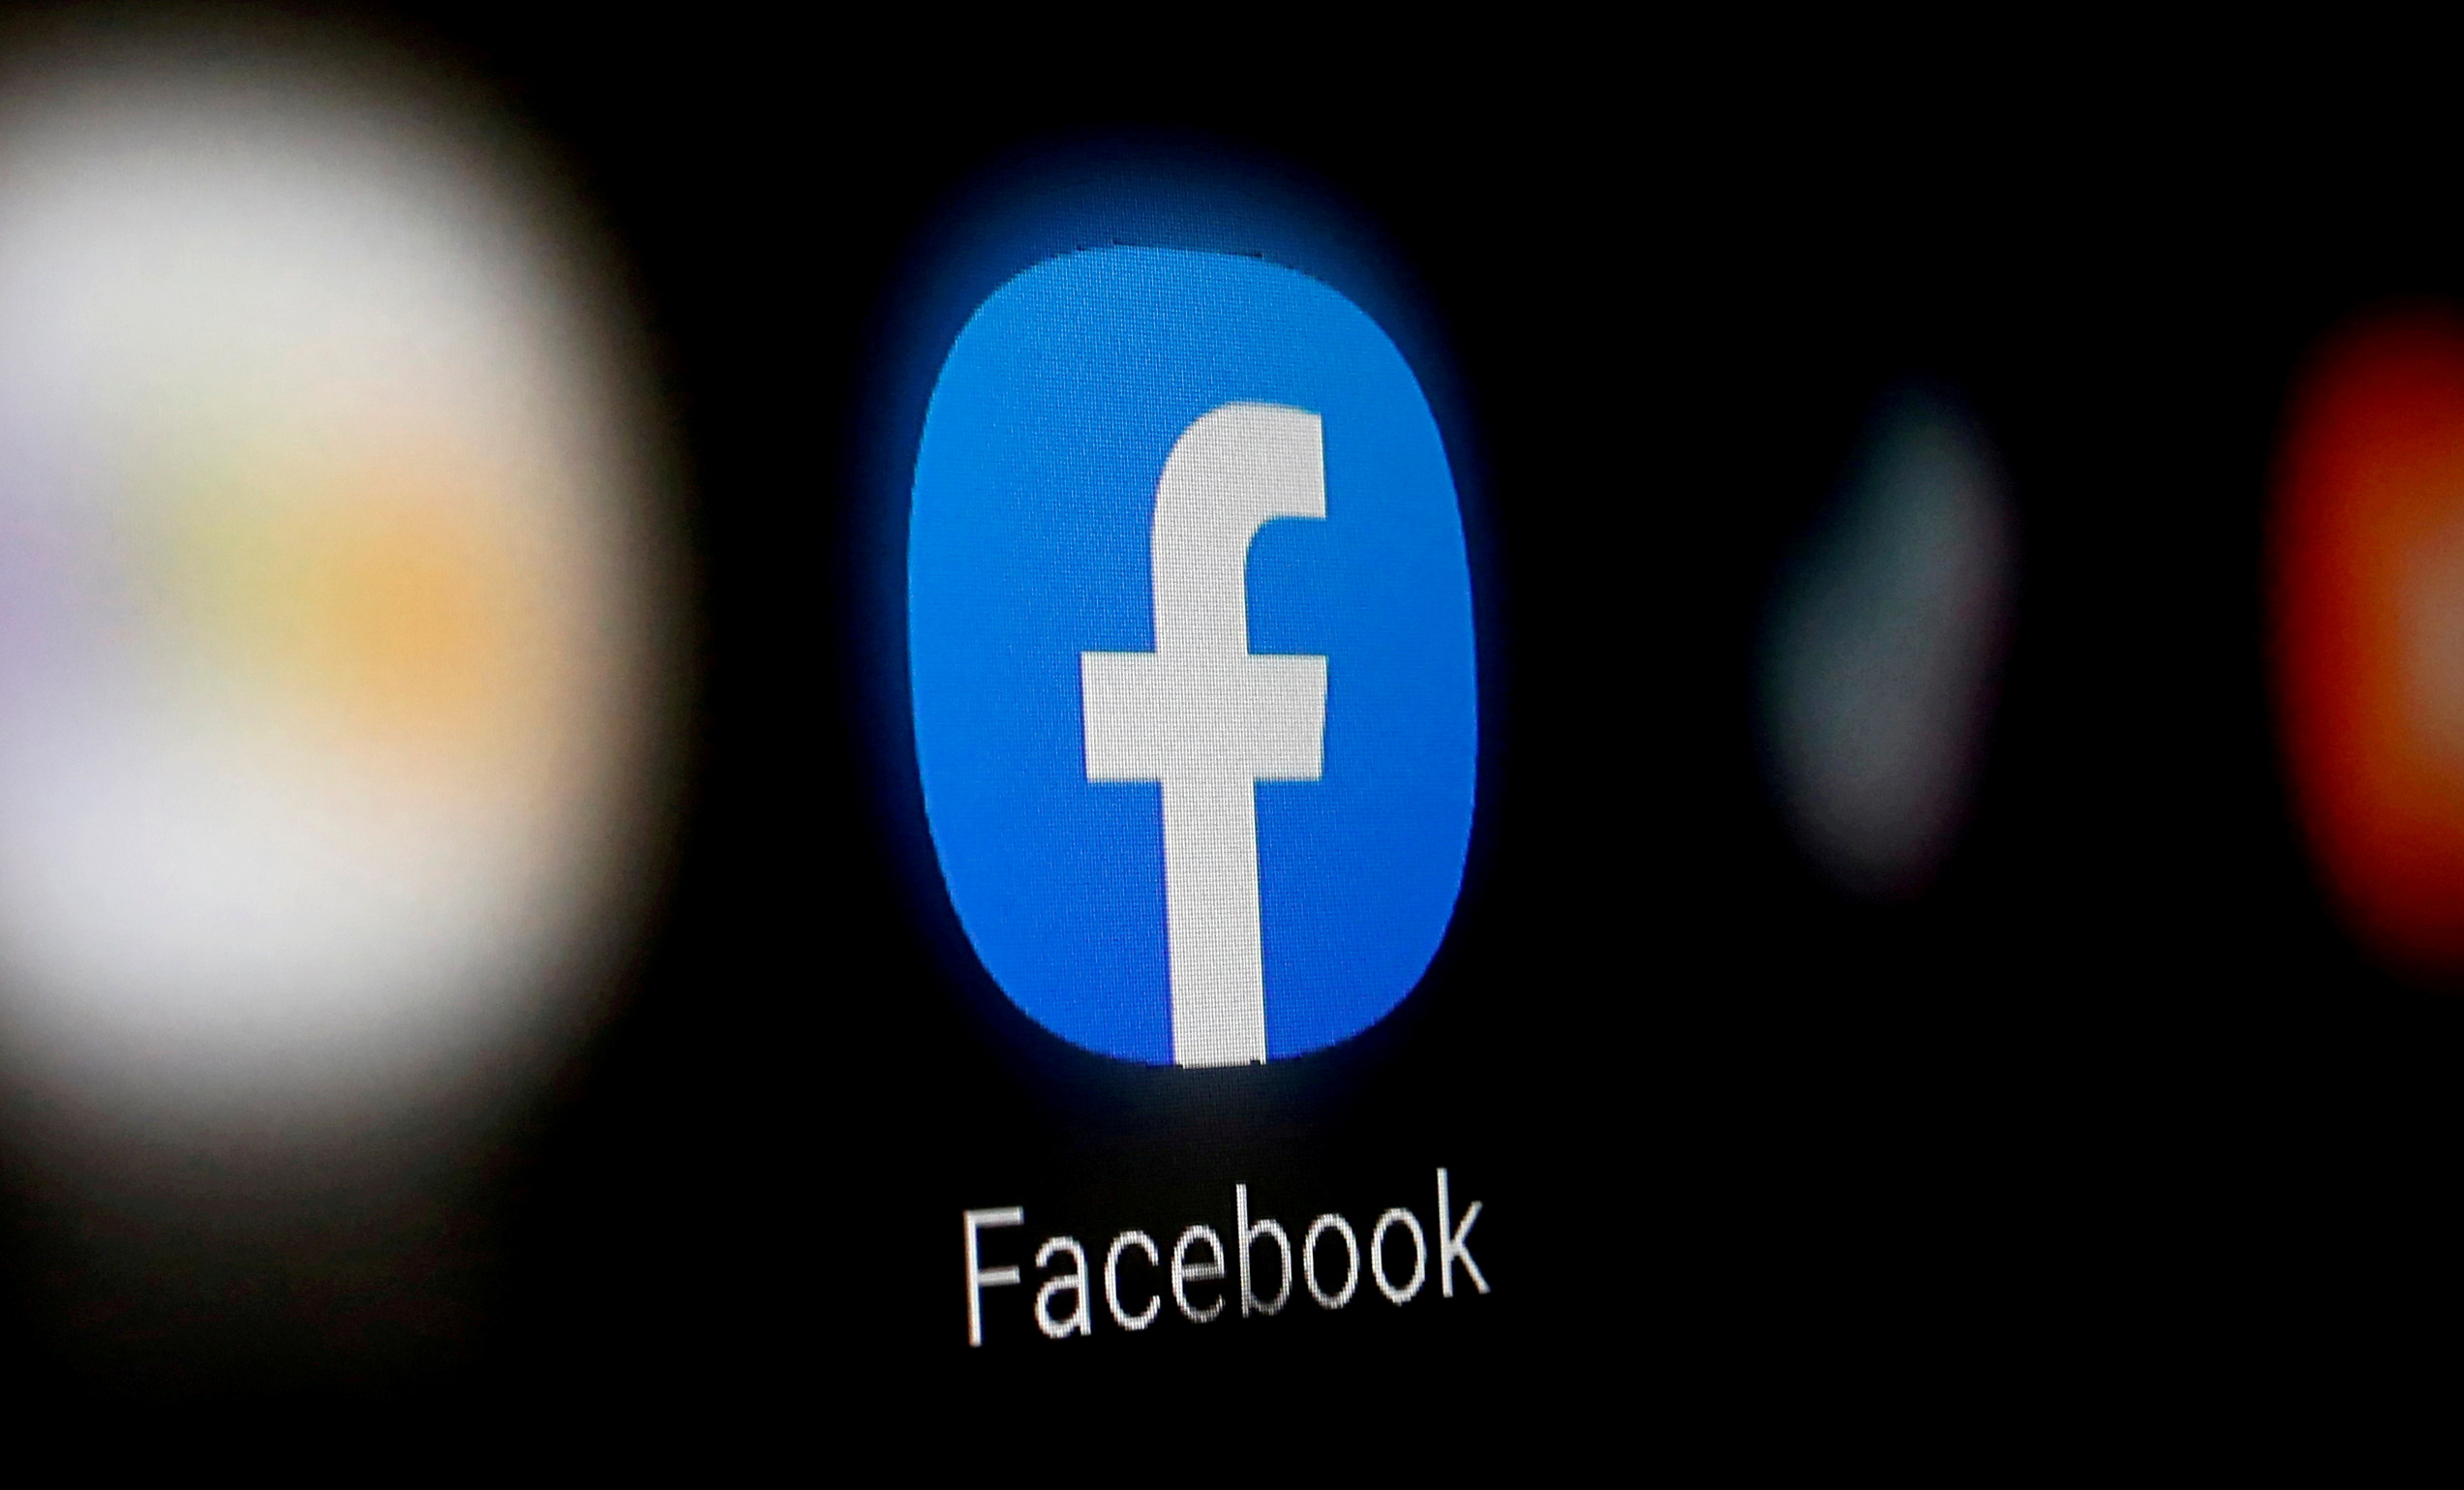 FILE PHOTO: A Facebook logo is displayed on a smartphone in this illustration taken January 6, 2020. REUTERS/Dado Ruvic/Illustration//File Photo/File Photo